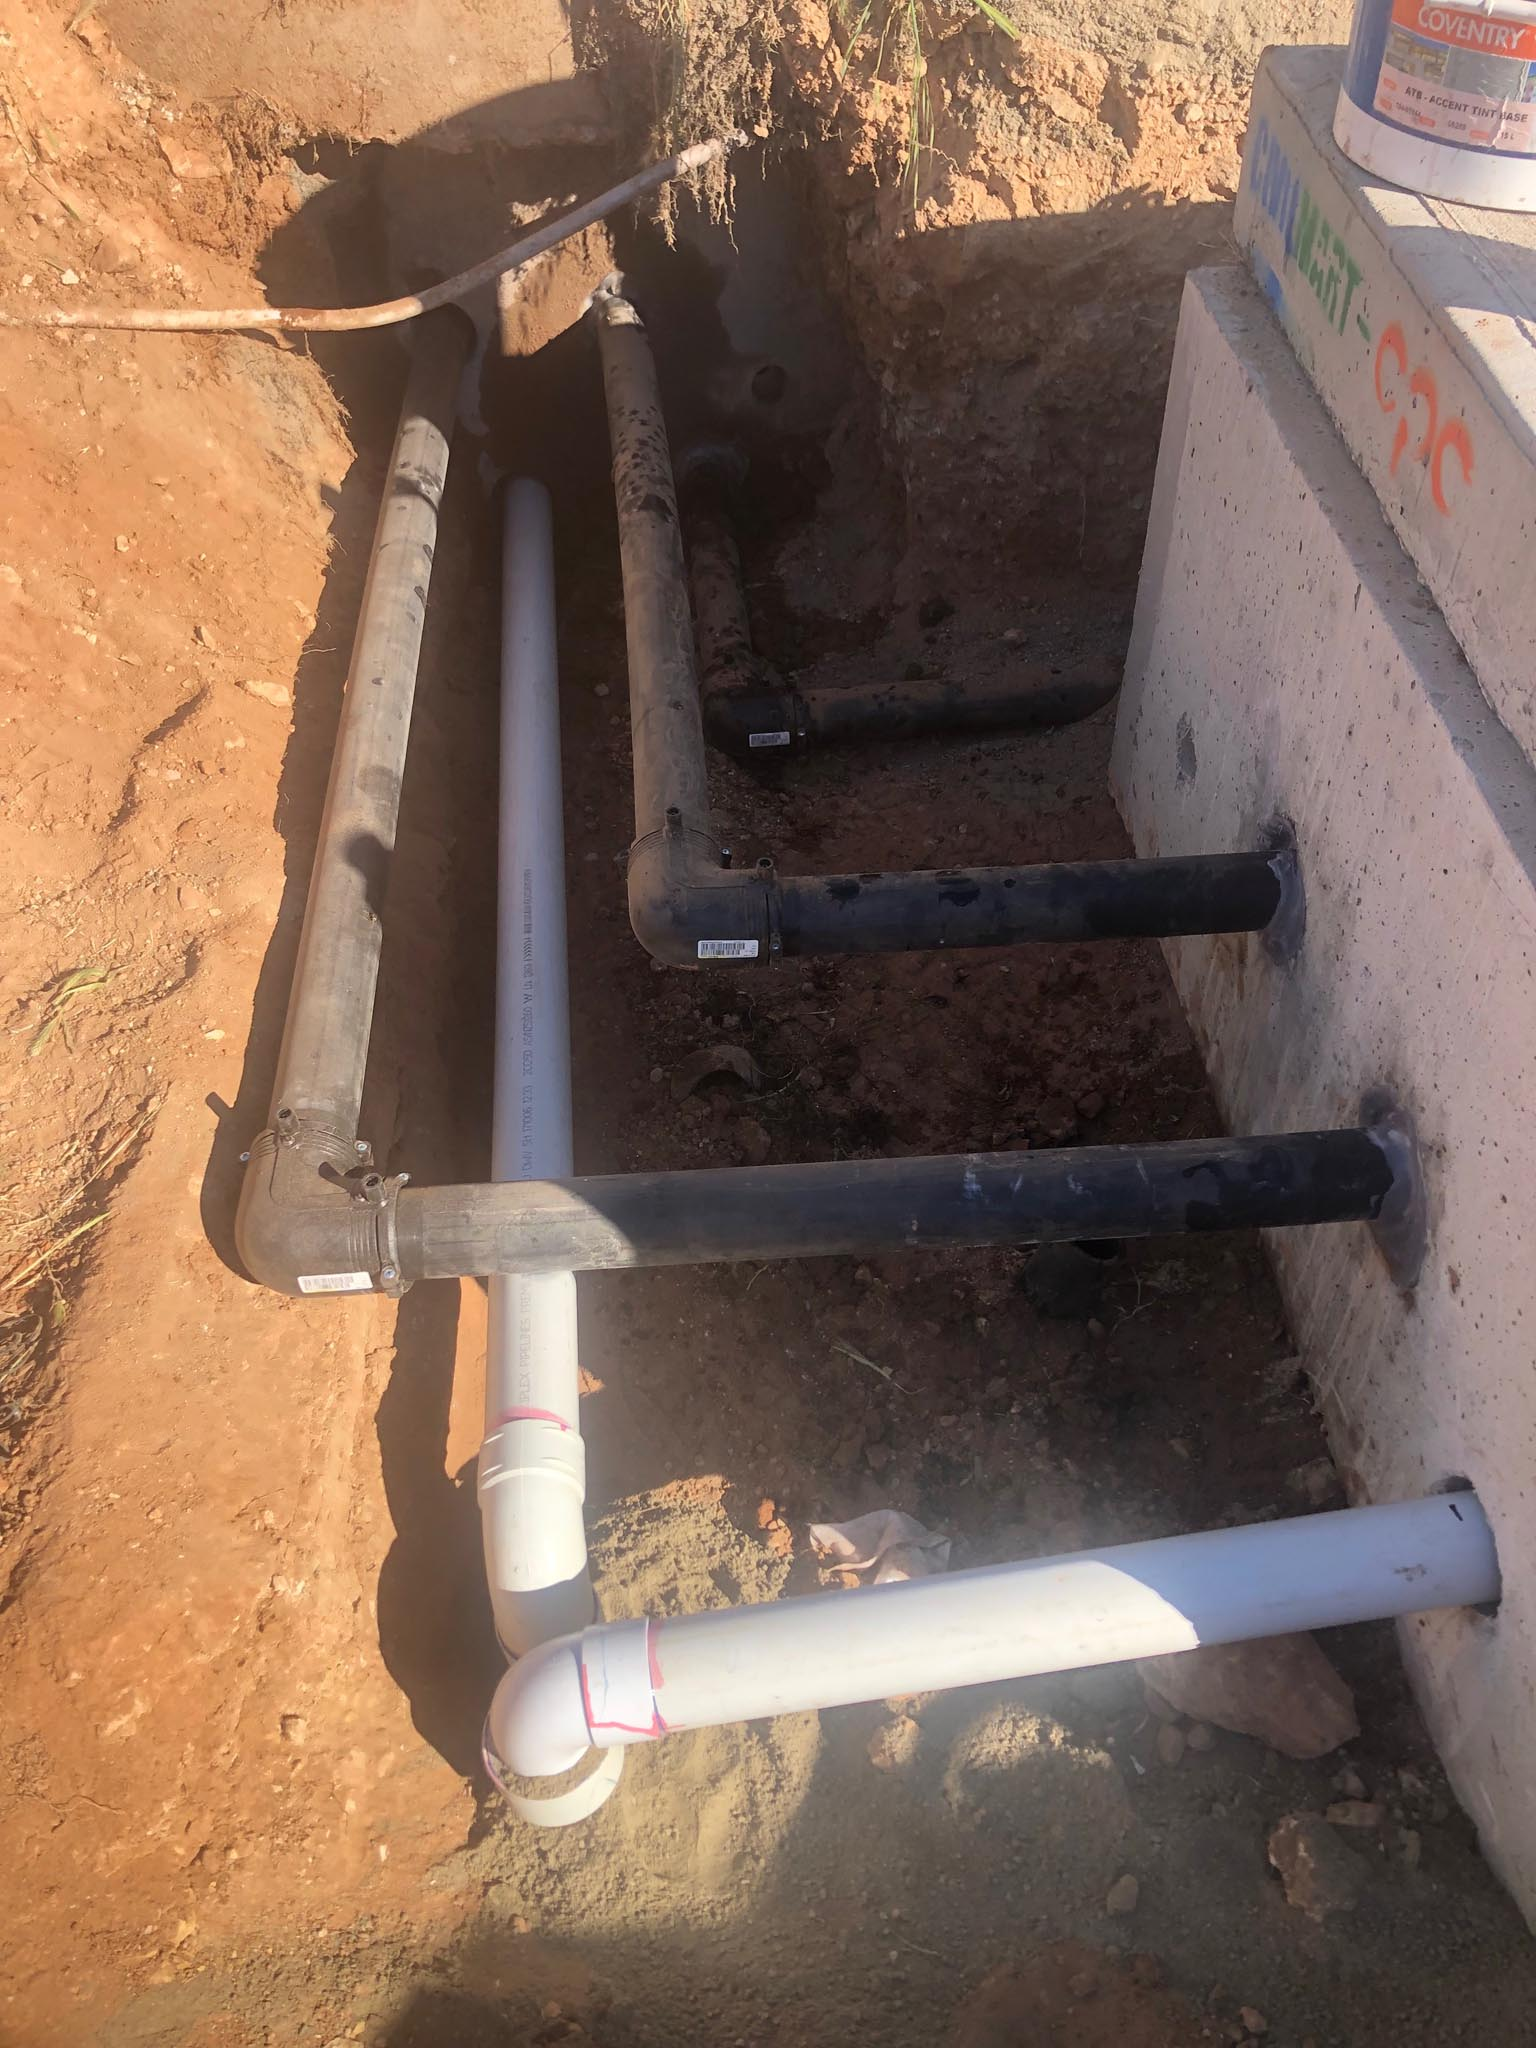 Council Sewer pump station installation in NSW